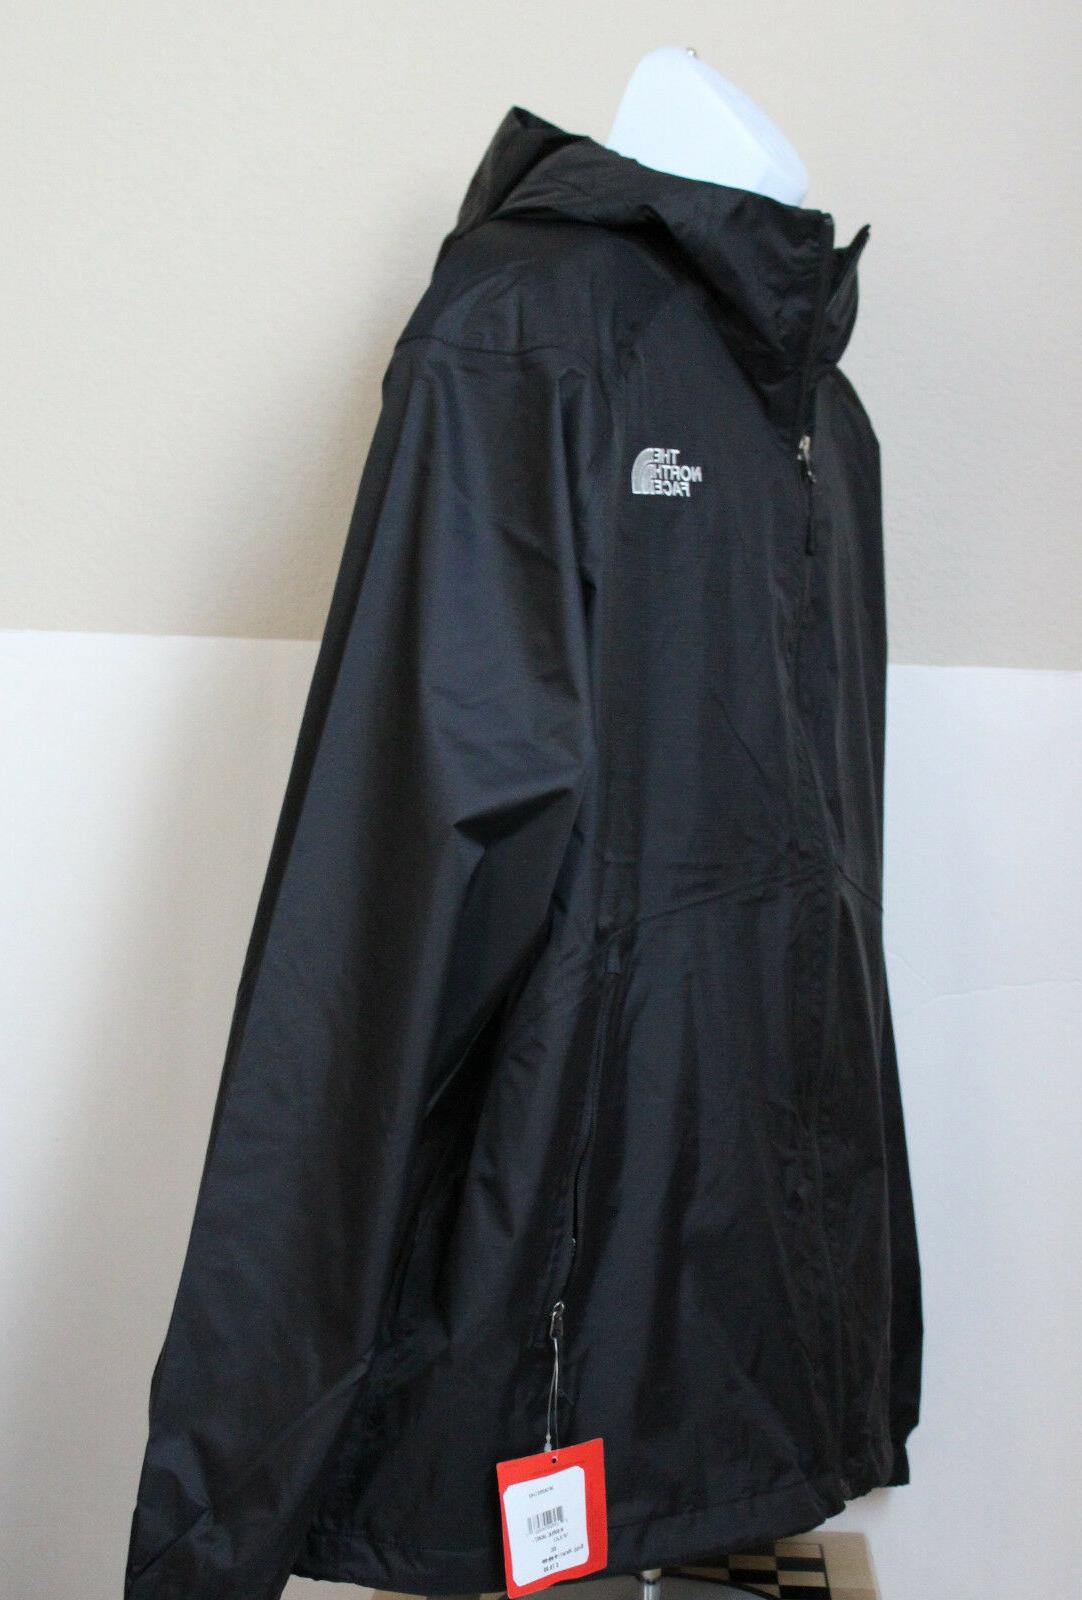 NWT The Men's Rain Water Proof M,L,XL,2XL